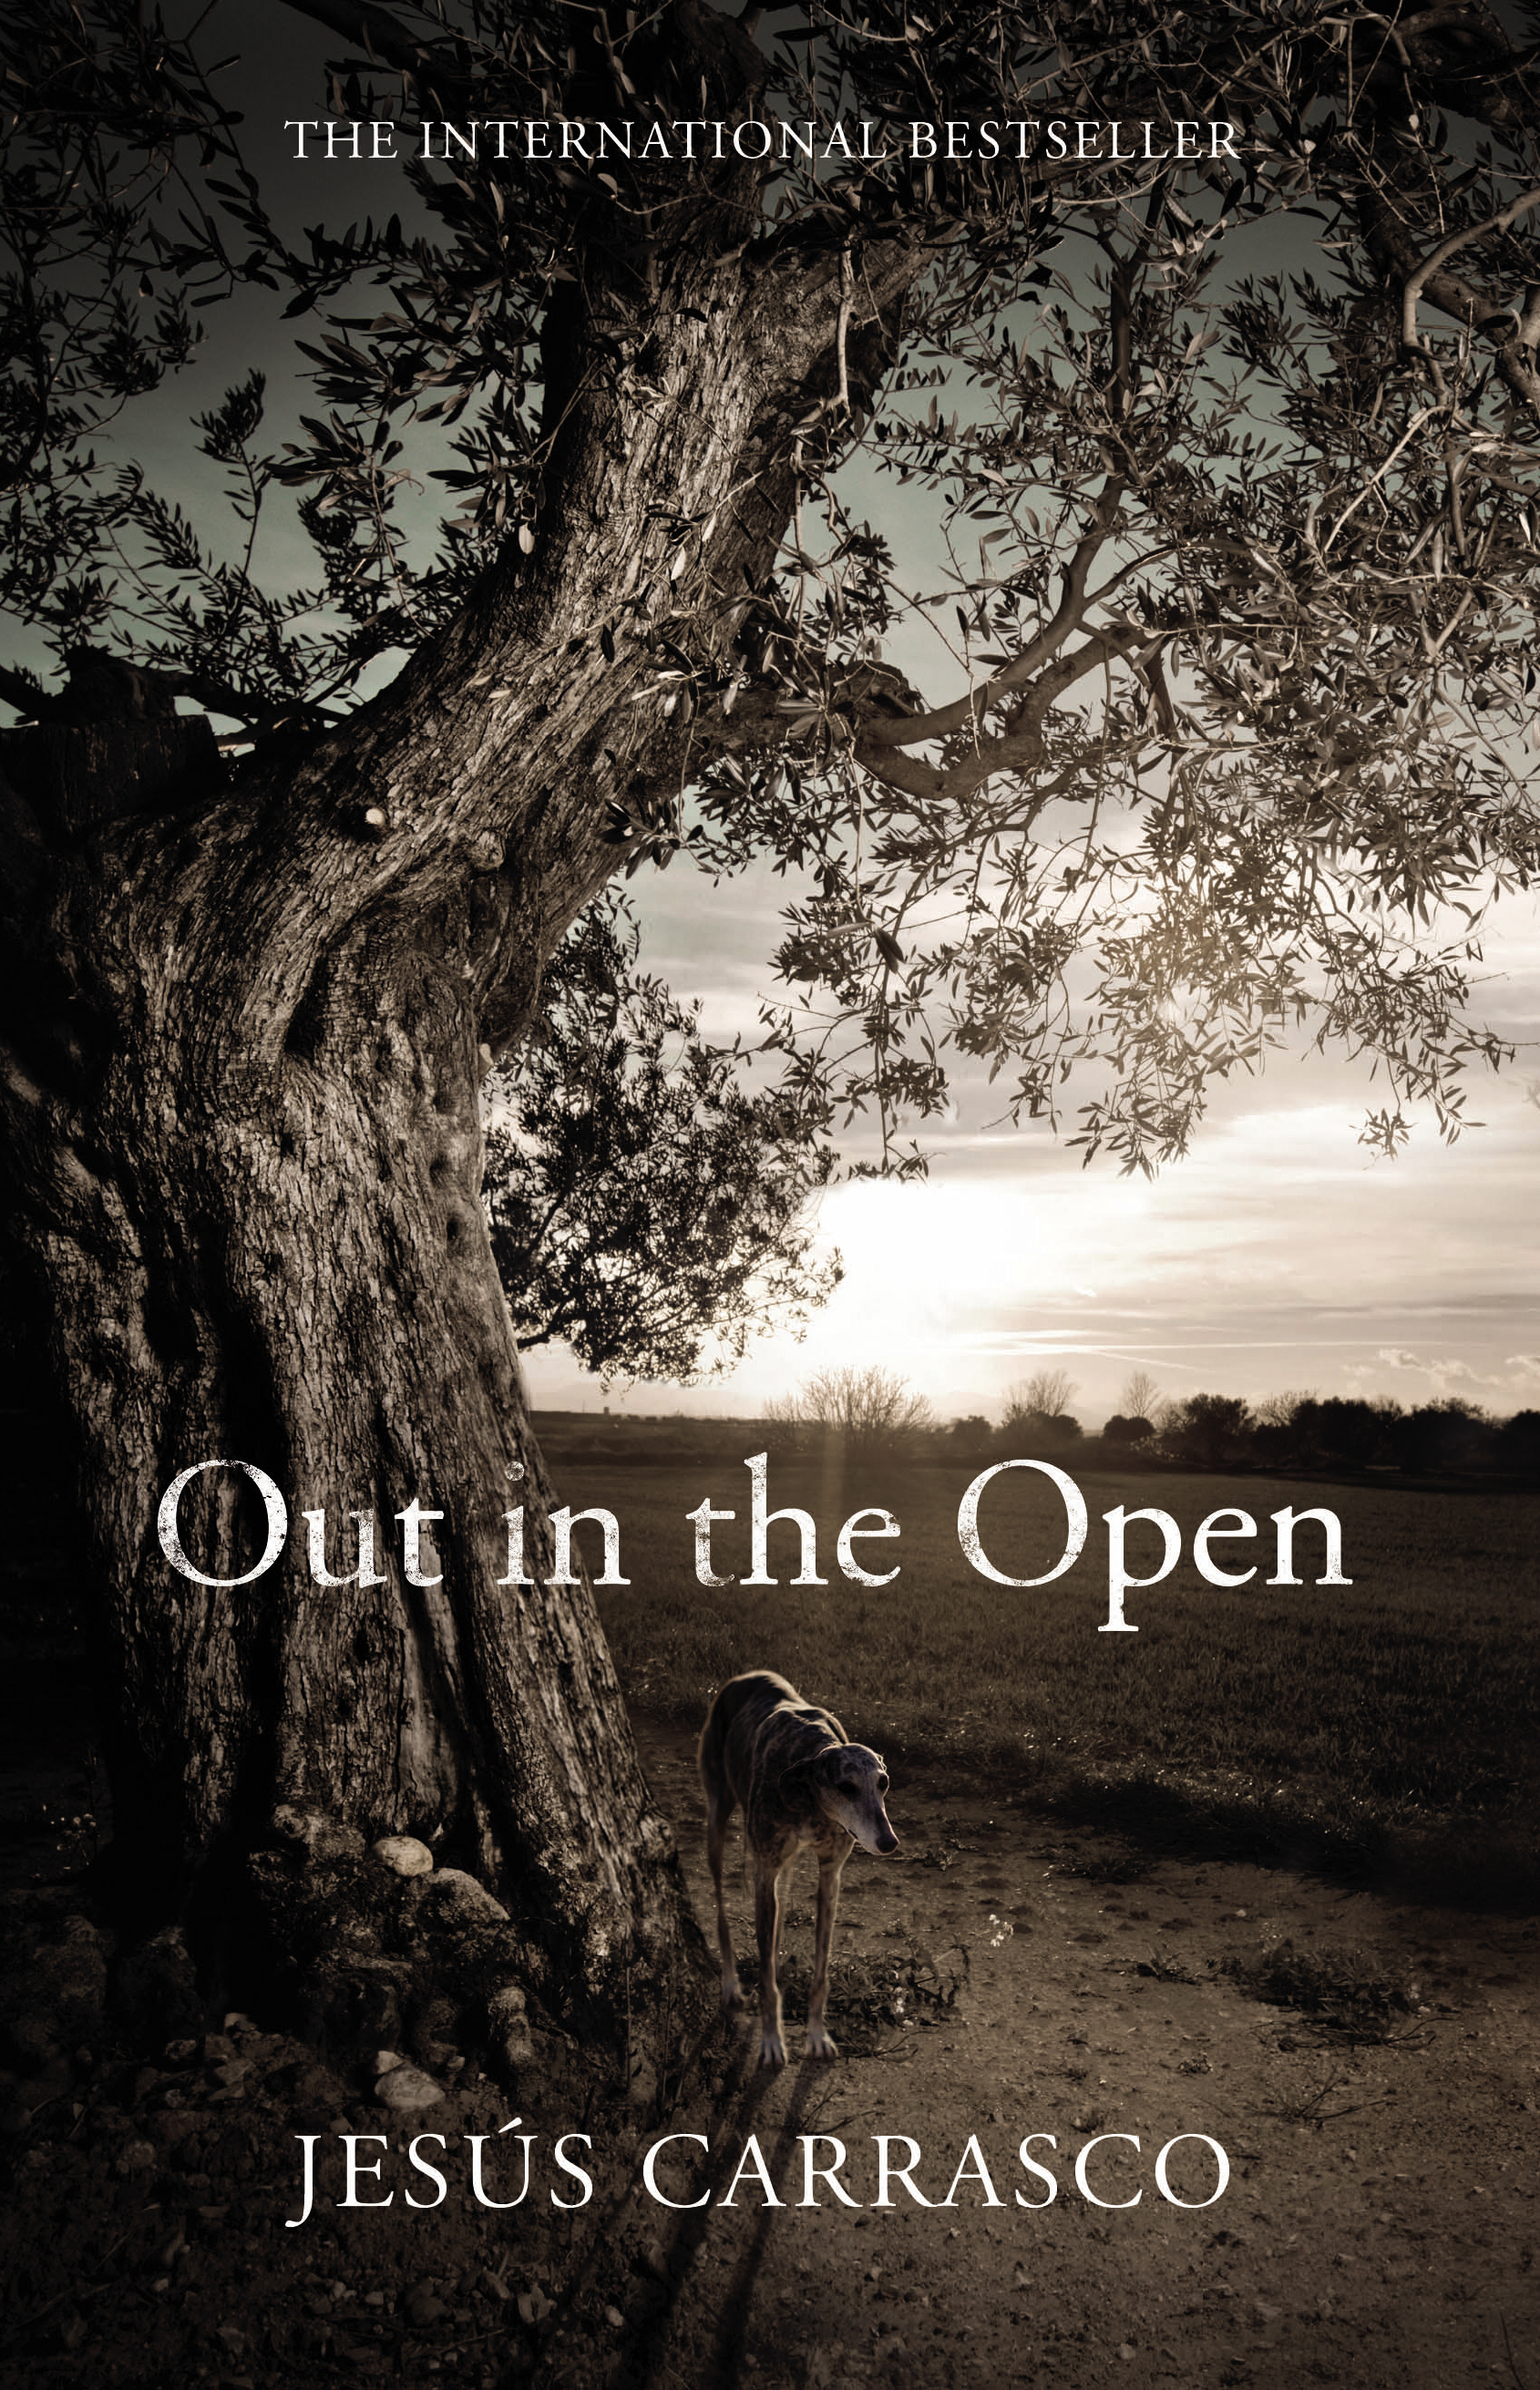 Cover image from Out in the Open, by Jesús Carrasco